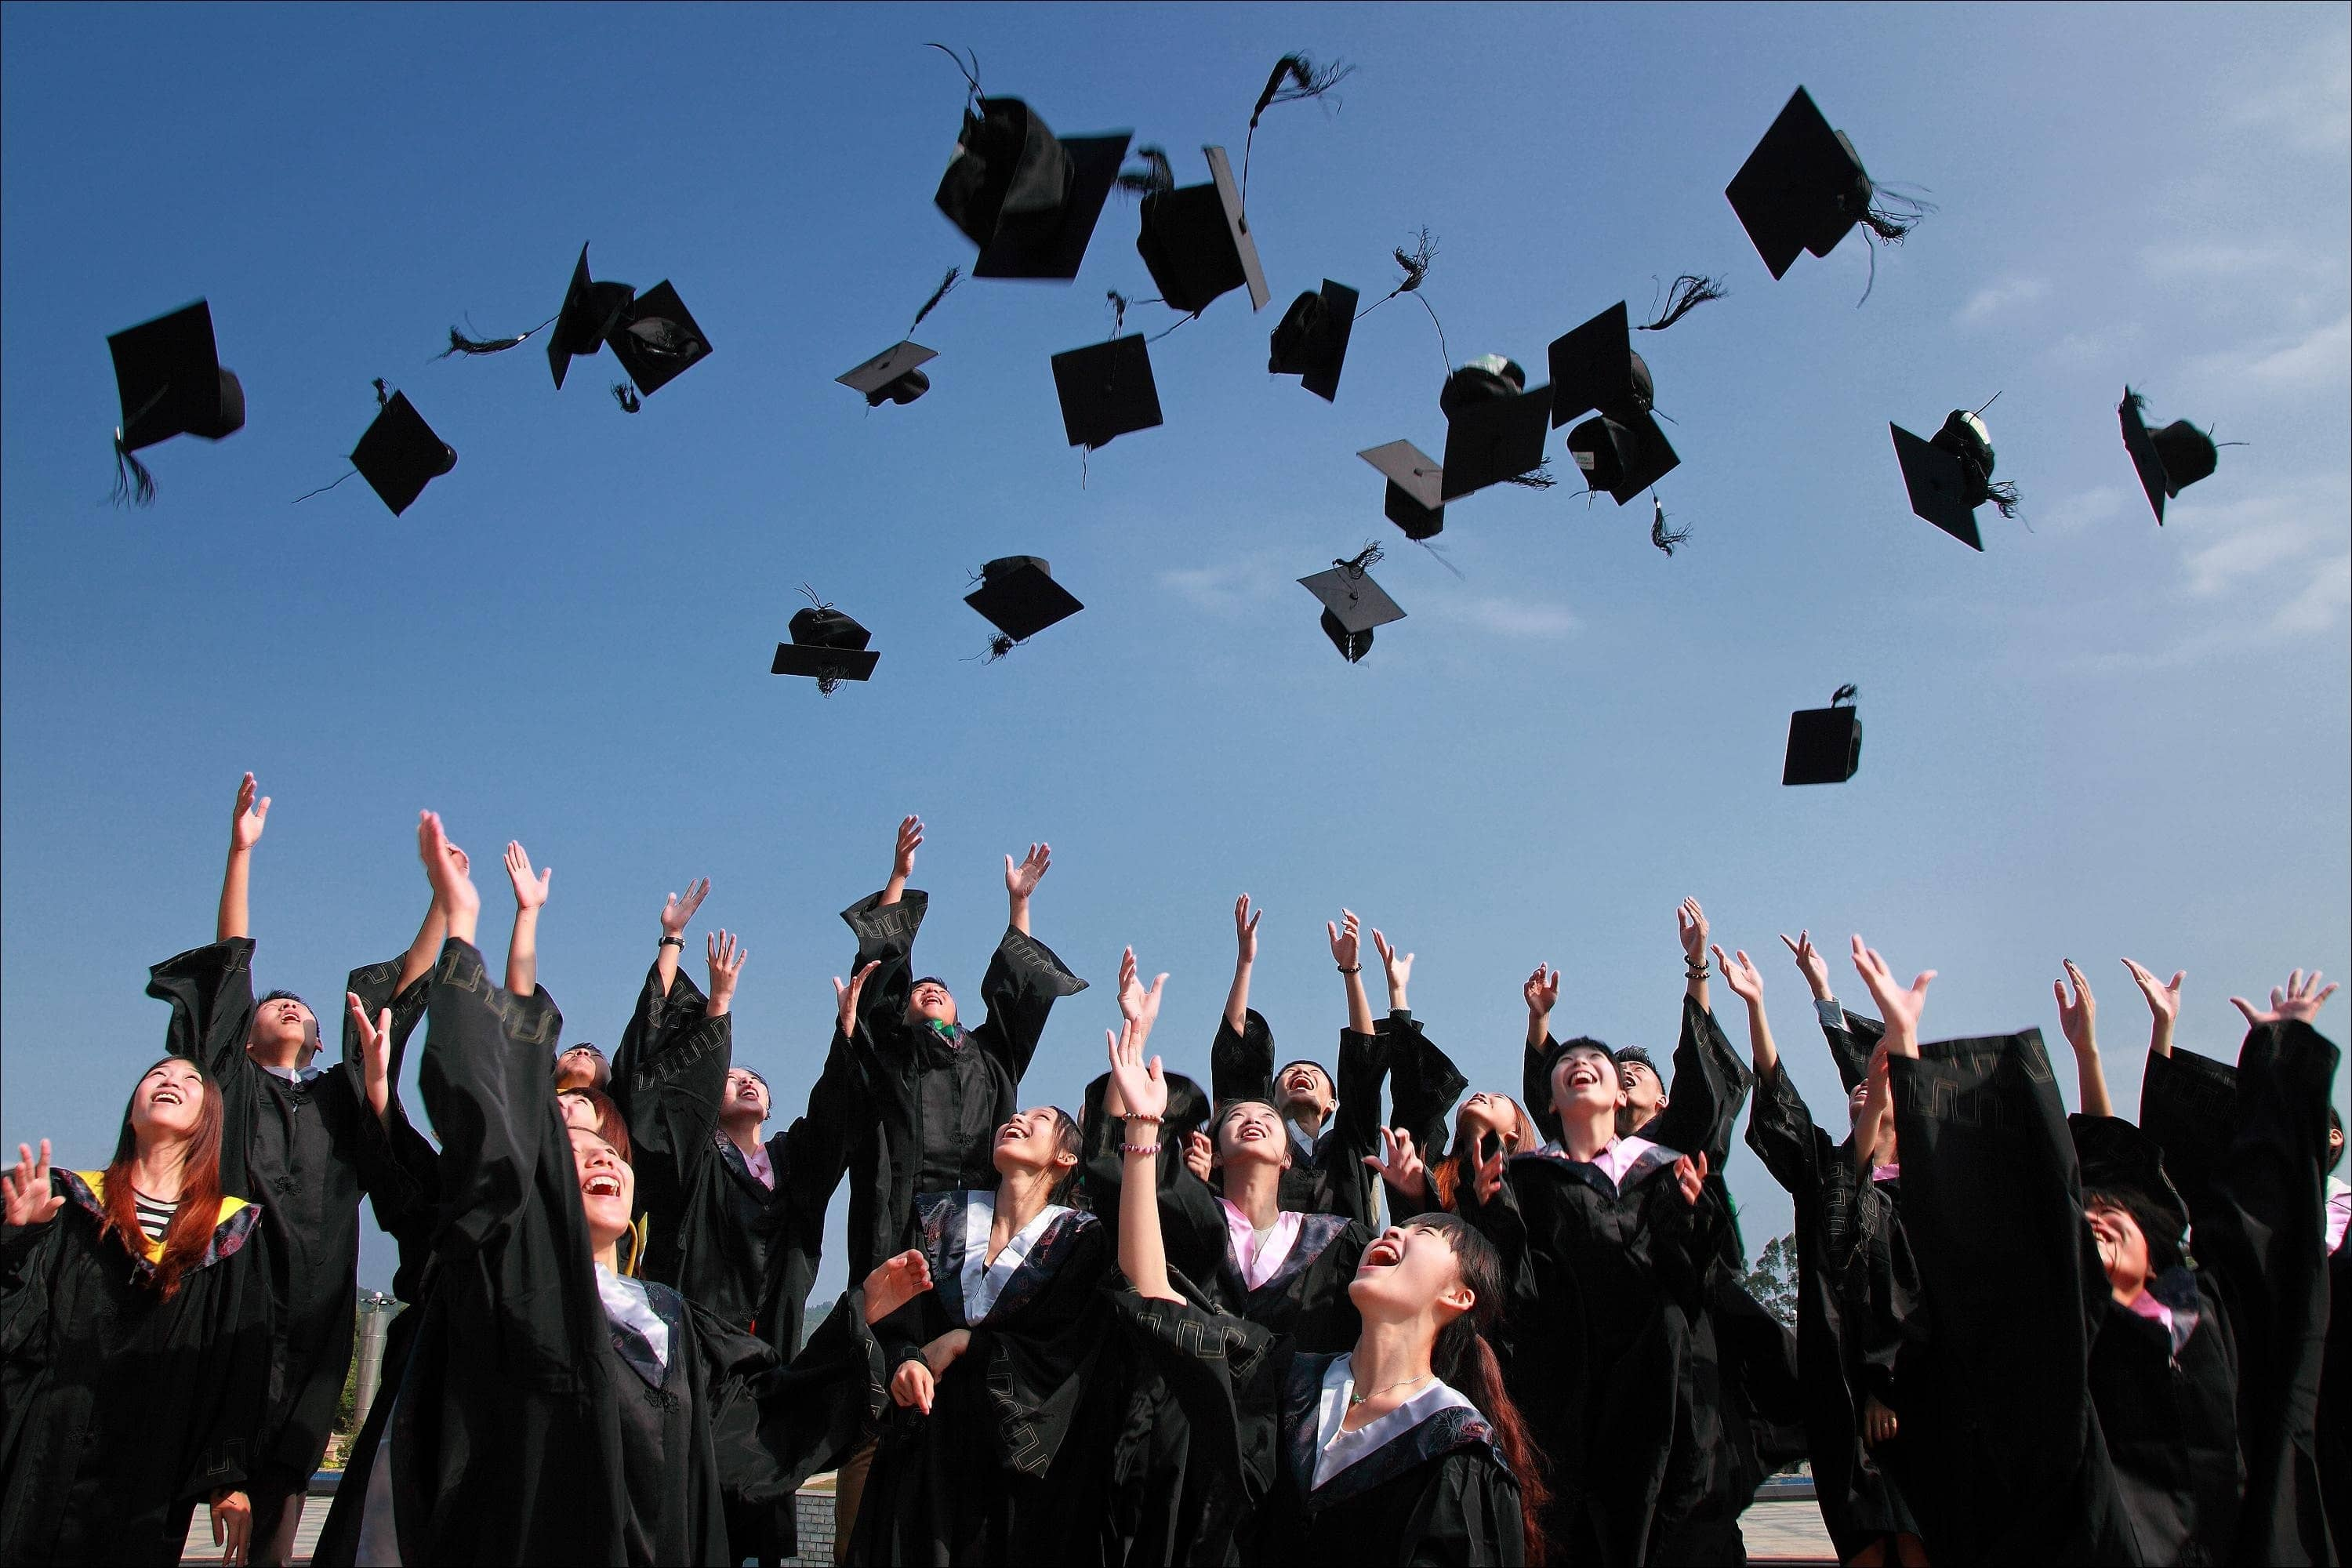 Student visas - Students Graduating